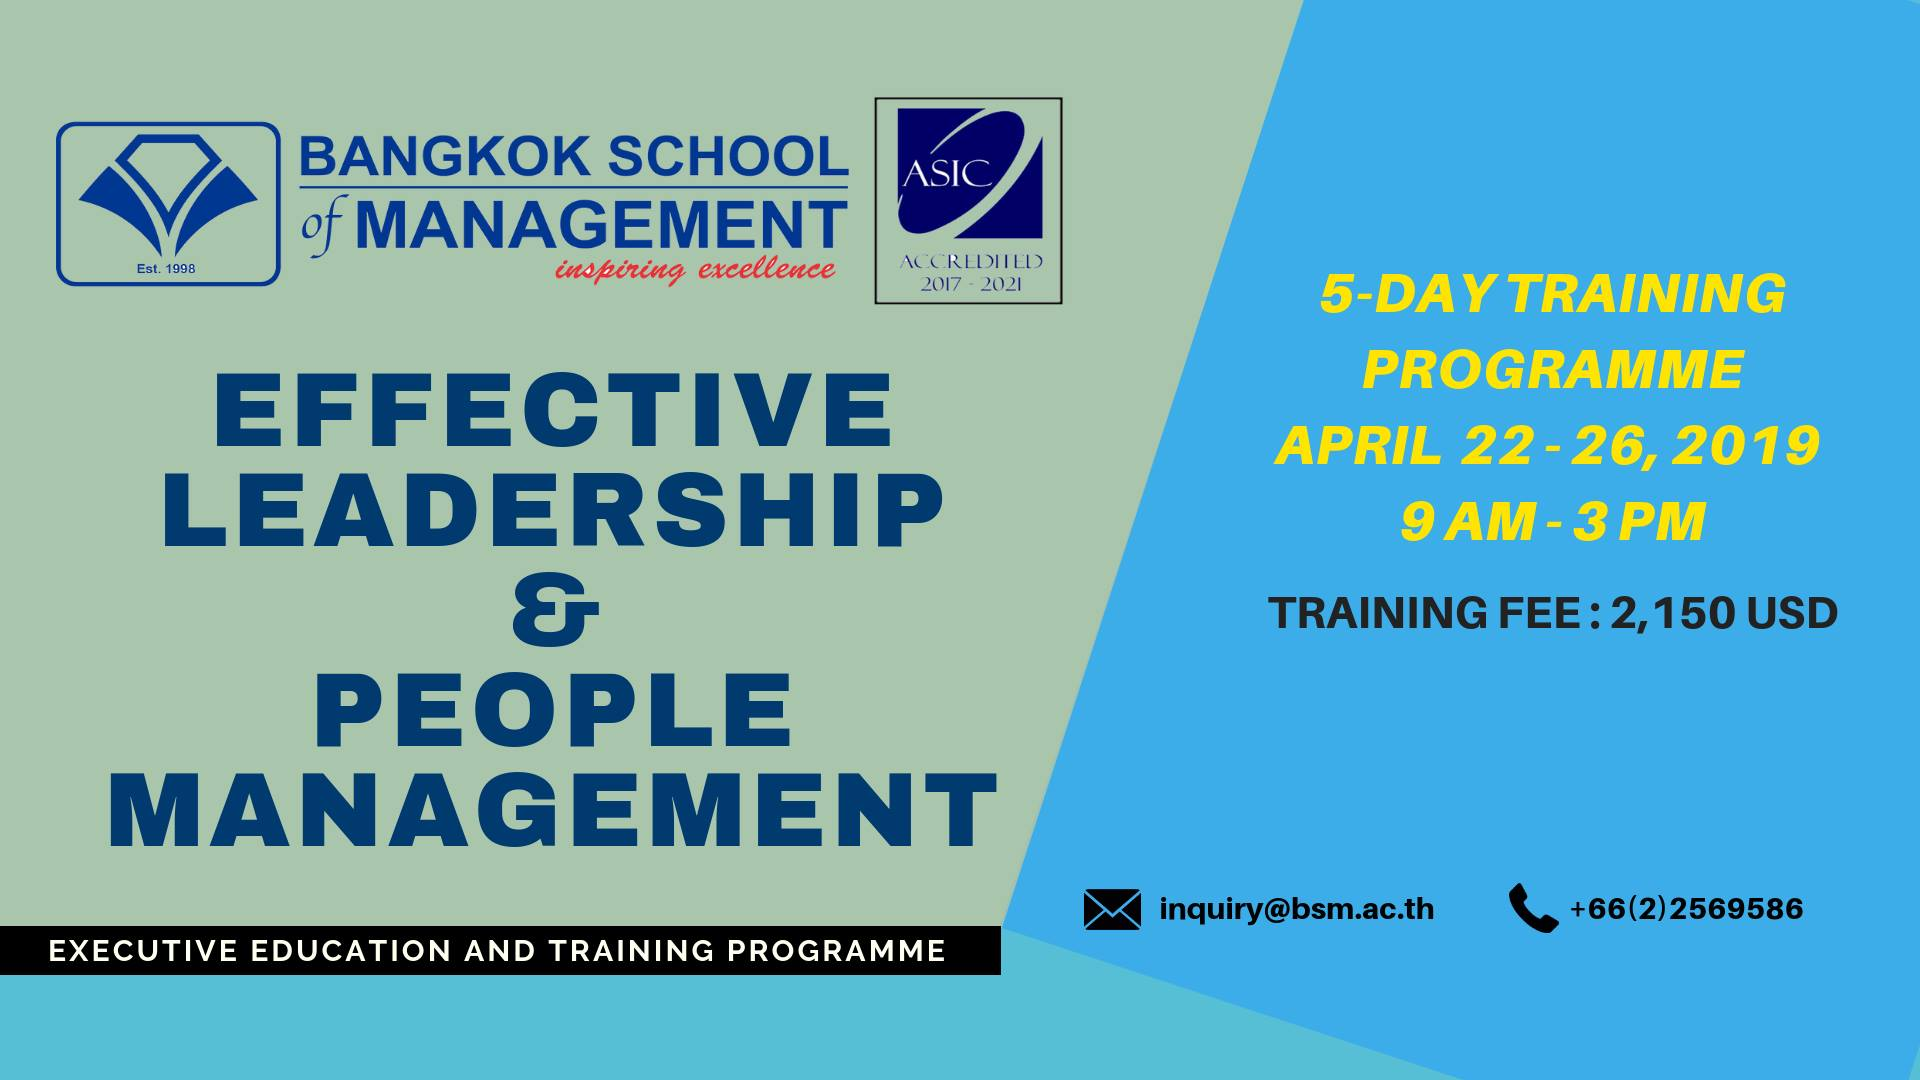 Date: April 22 – 26, 2019 Effective Leadership & People Management